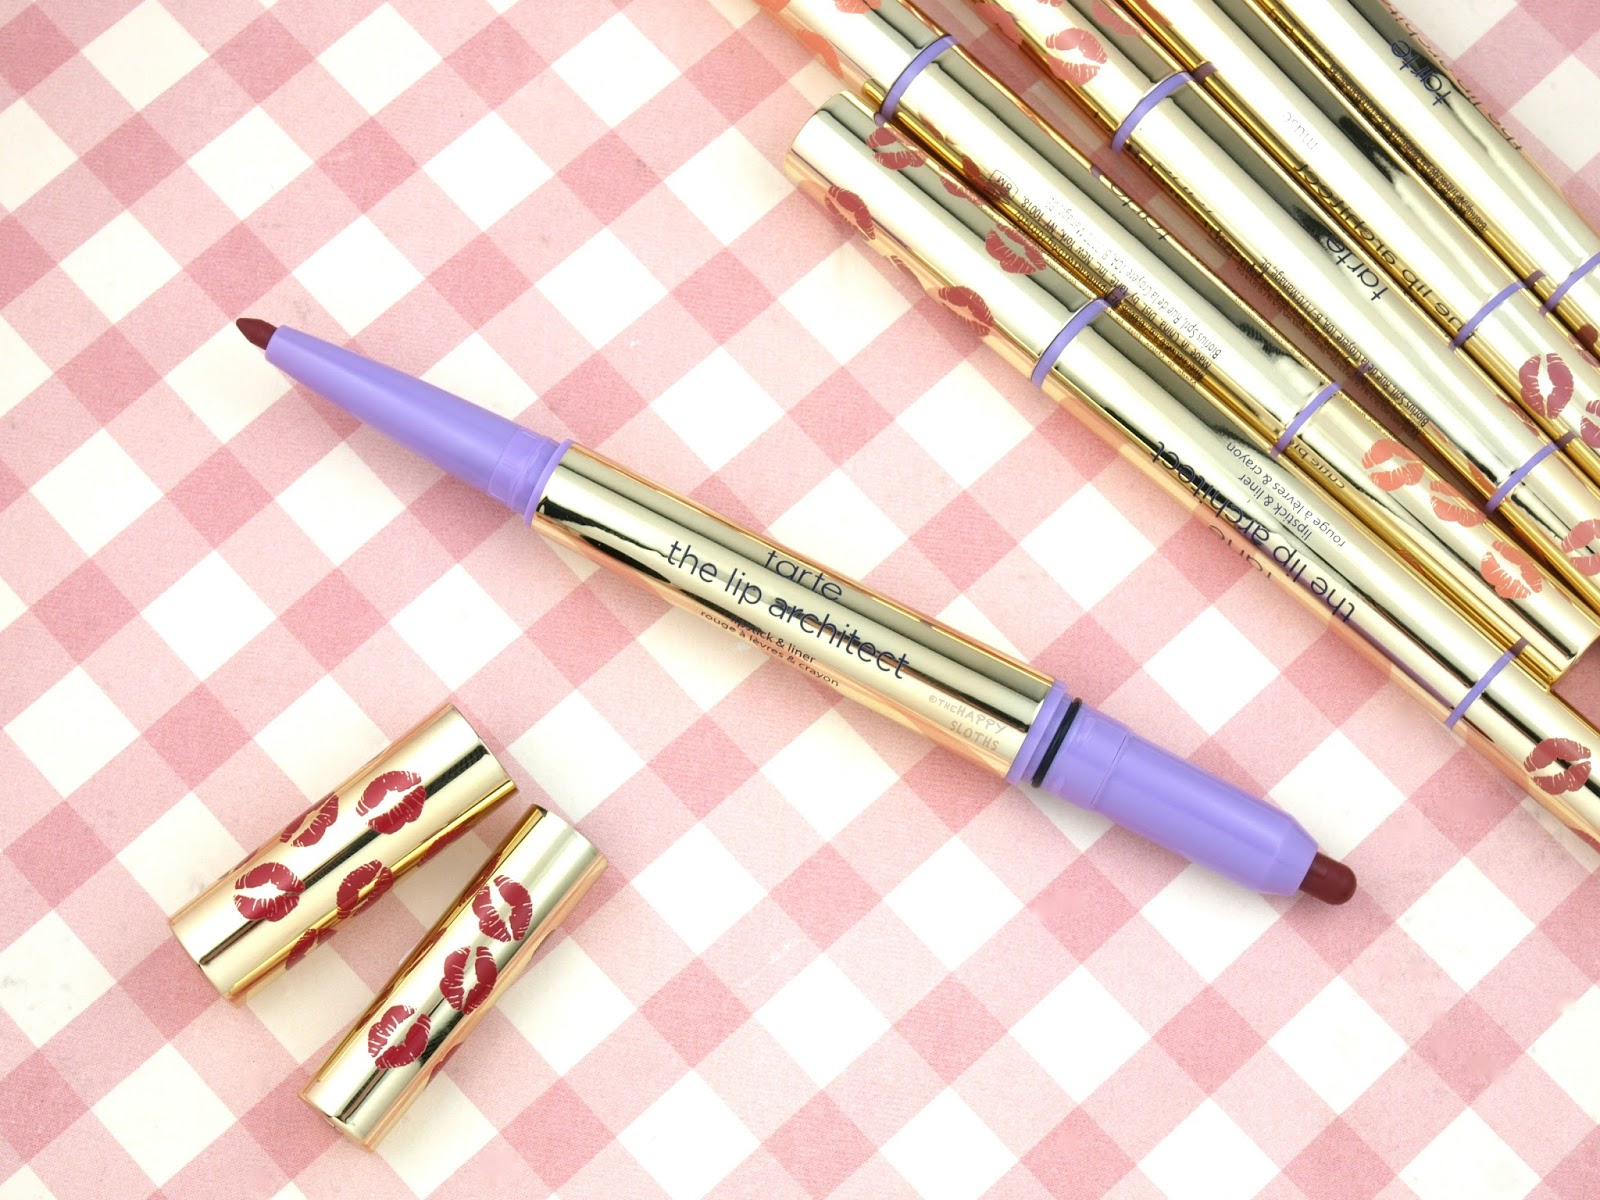 Tarte The Lip Architect Lipstick & Liner: Review and Swatches